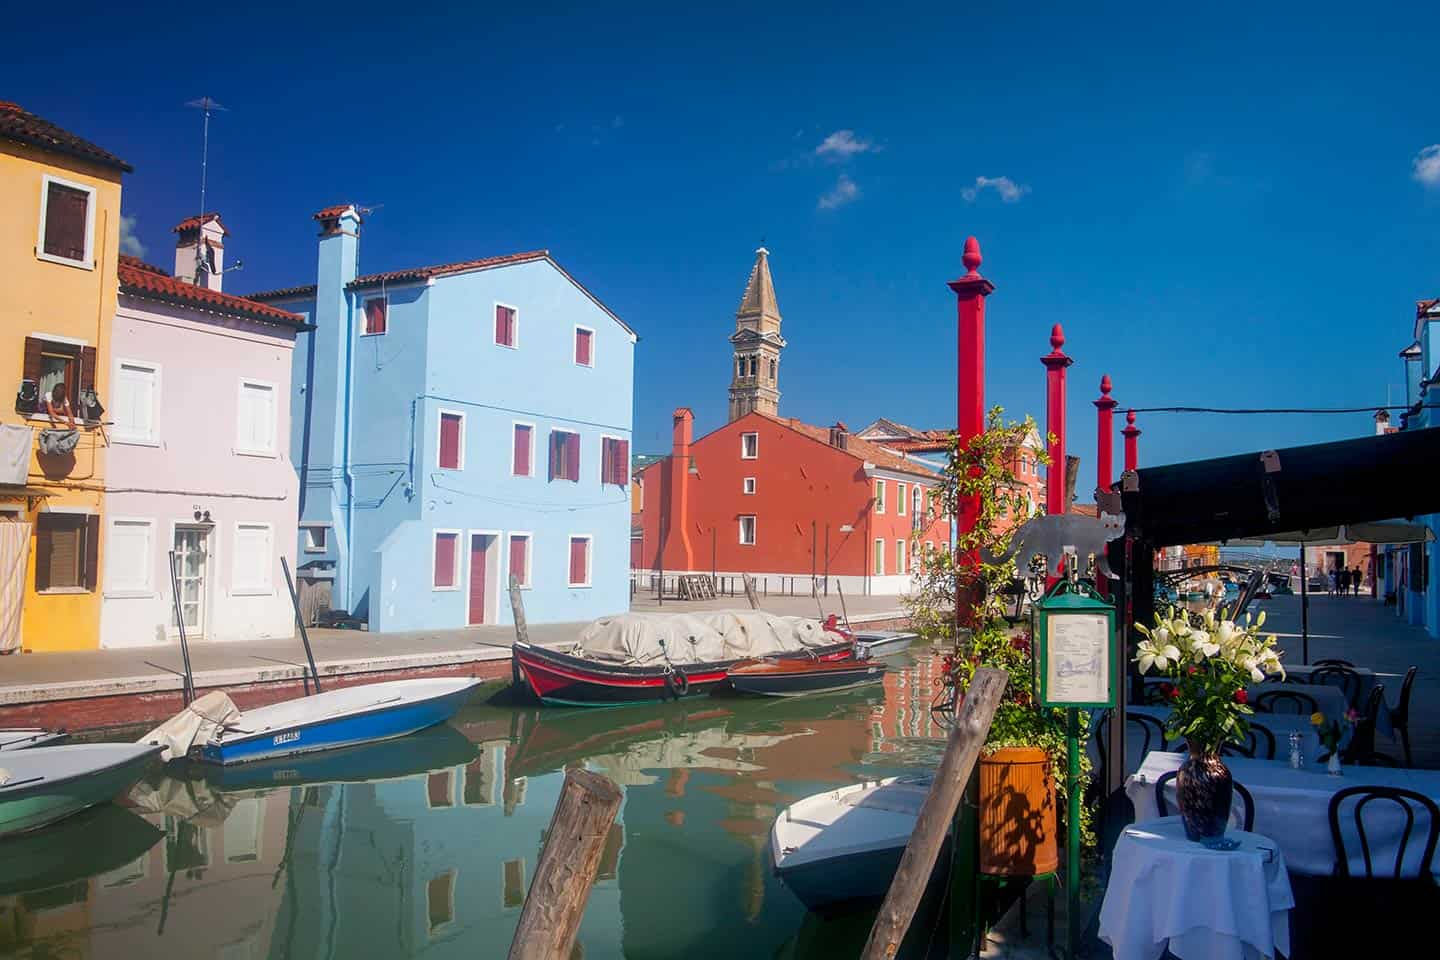 Best things to do Venice Image of restaurant and canal on island of Burano